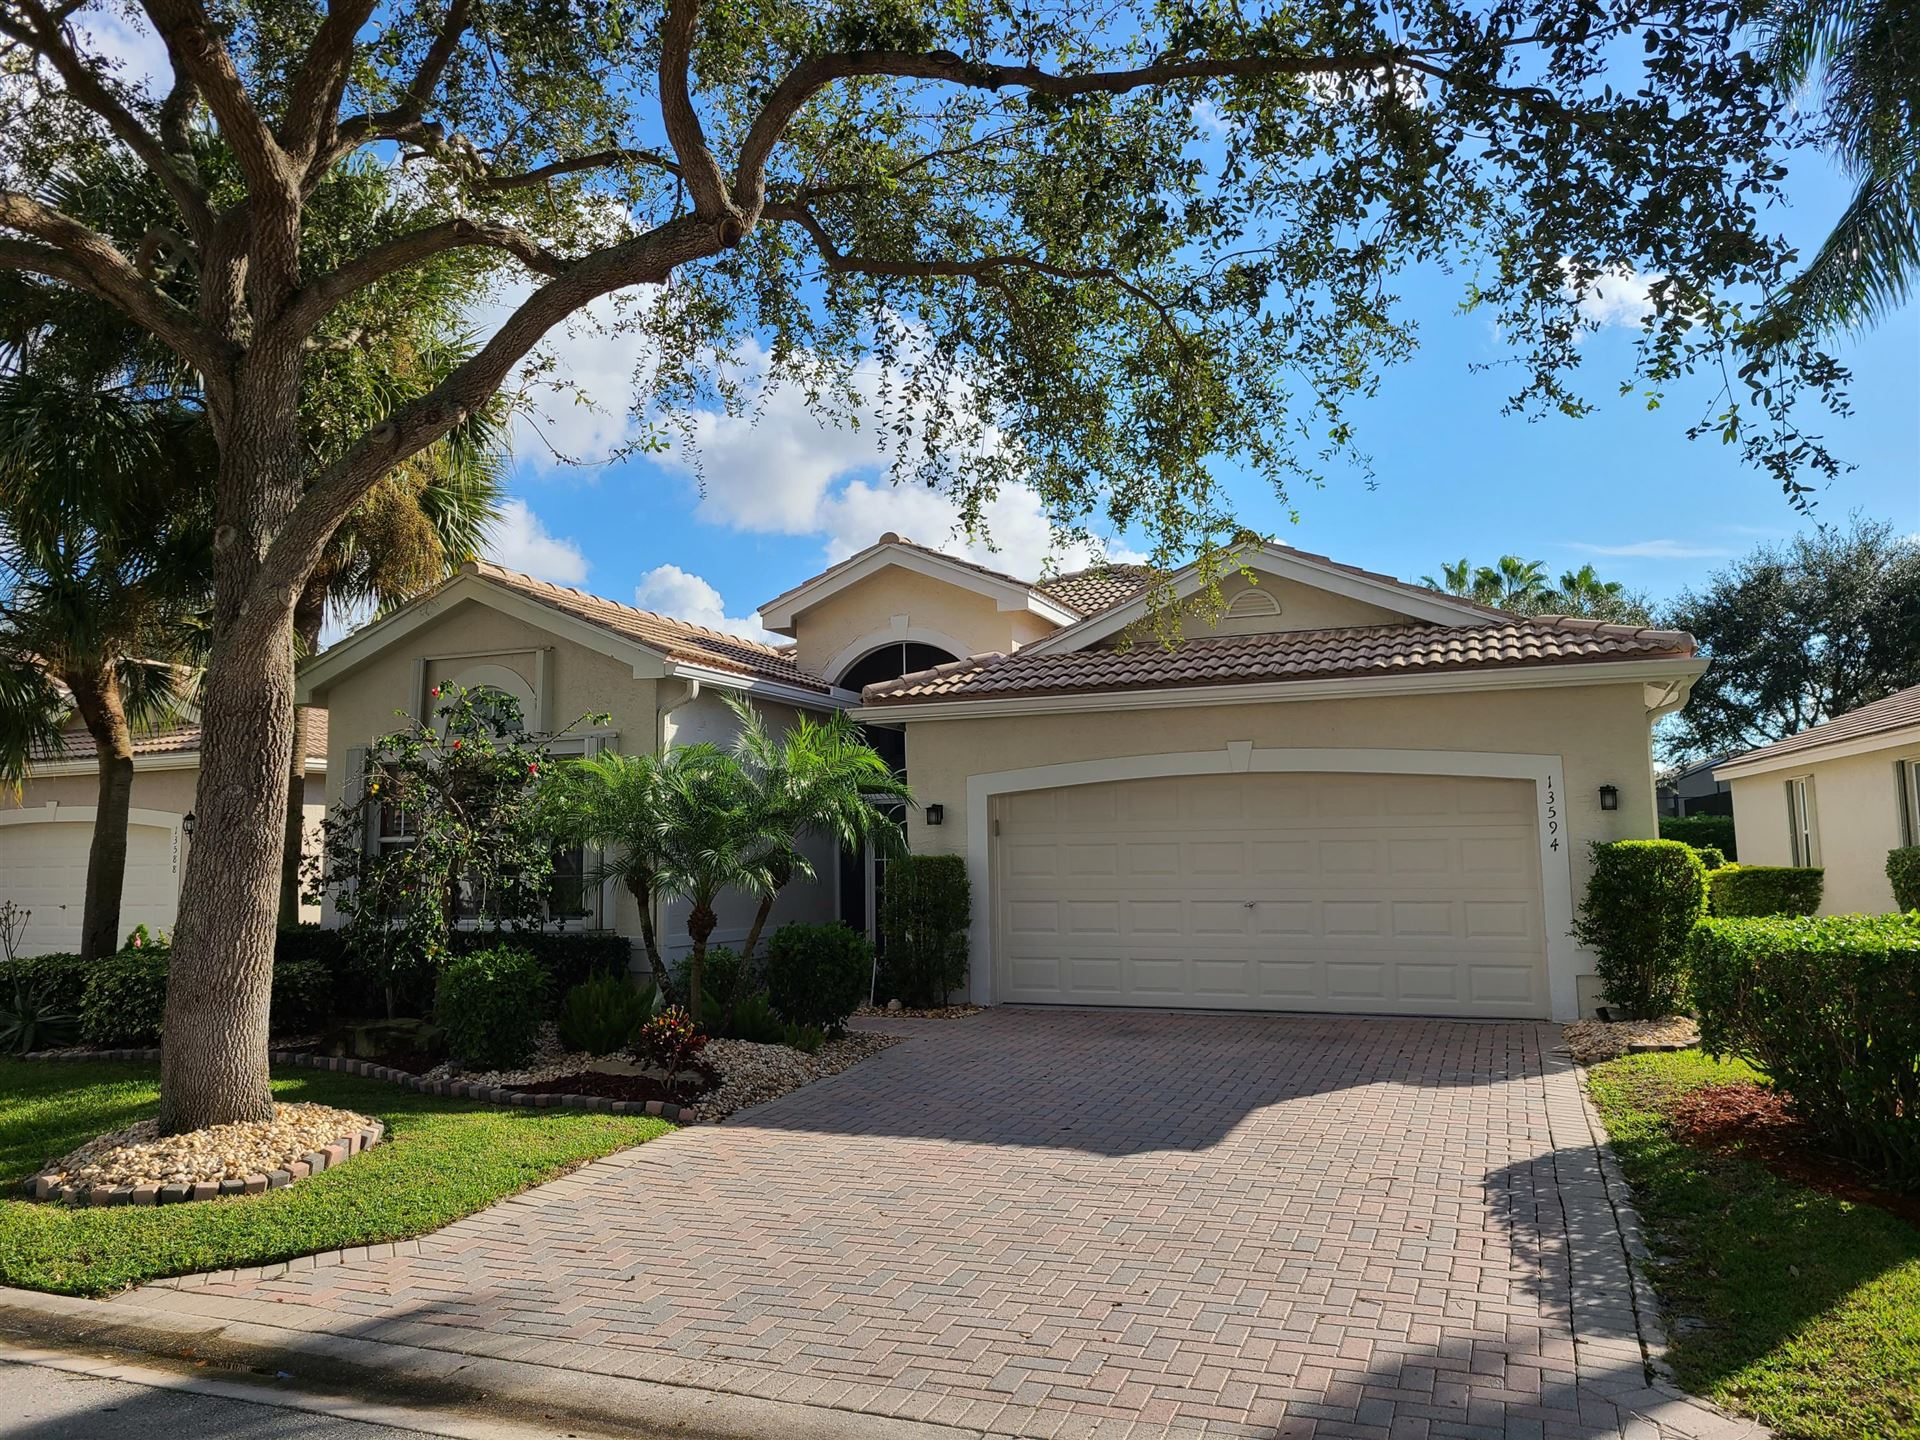 13594 Morocca Lake Lane, Delray Beach, FL 33446 - #: RX-10663765